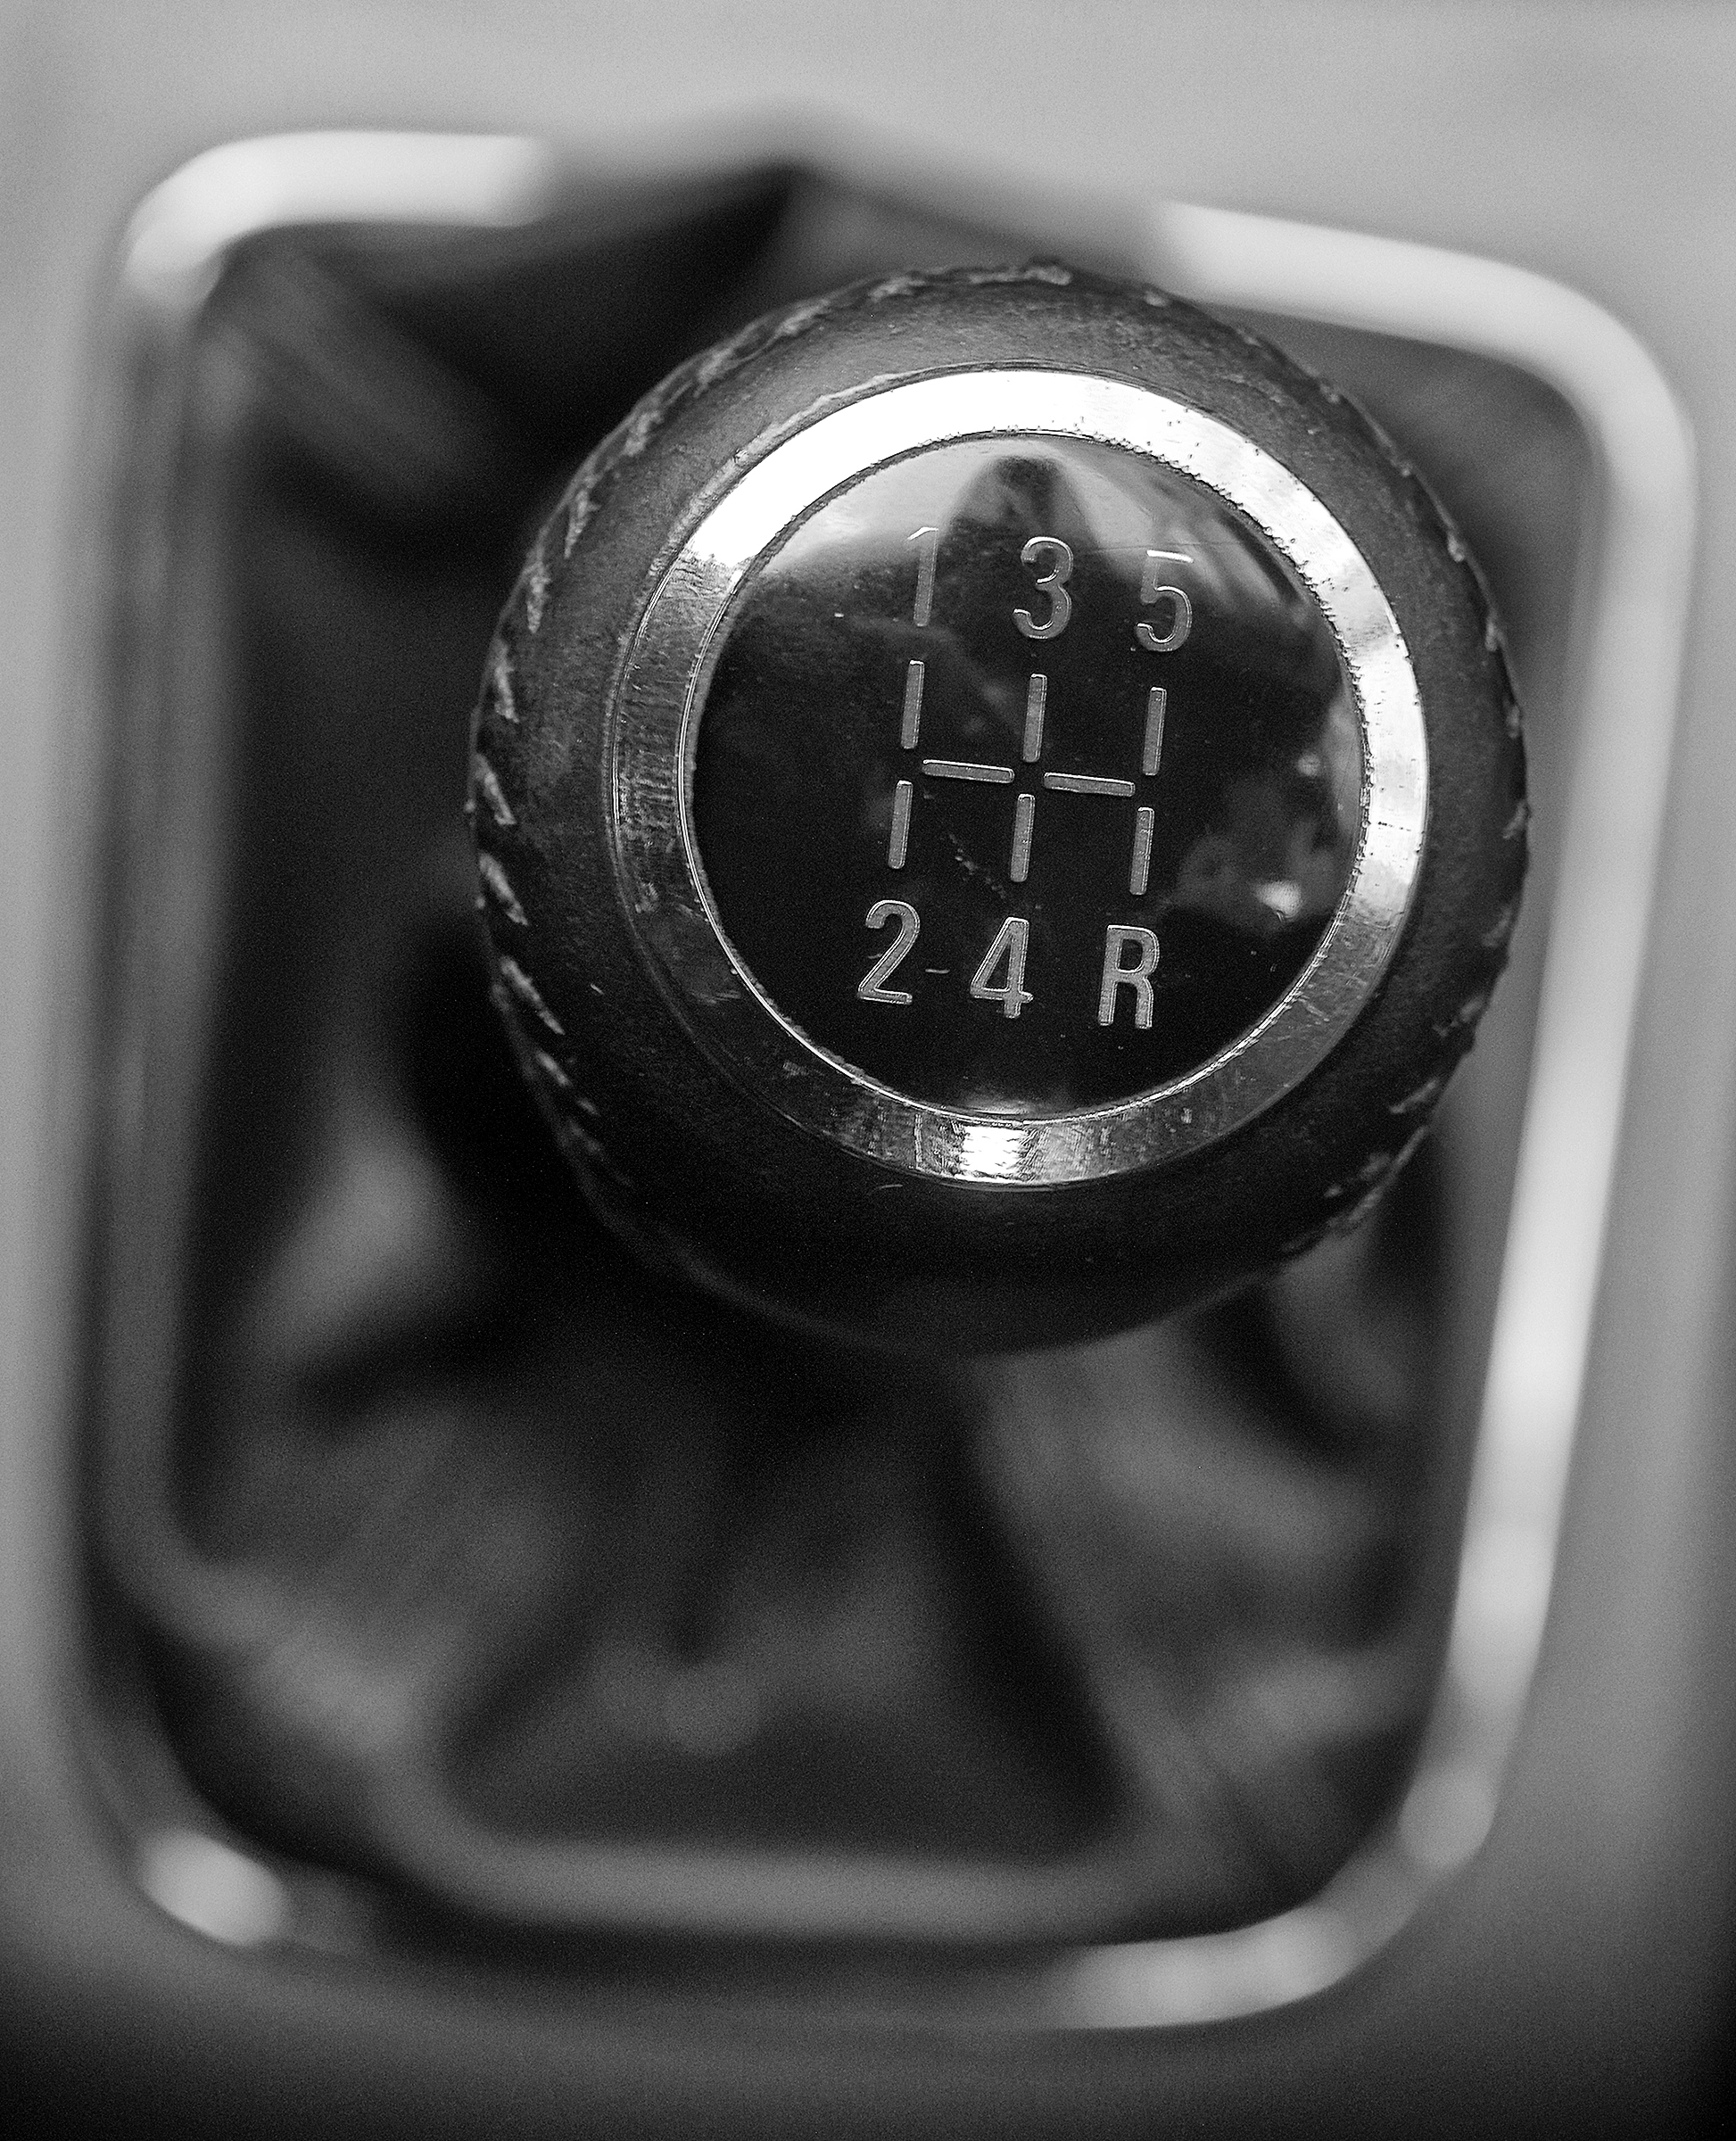 A manual shift of modern car gear shifter